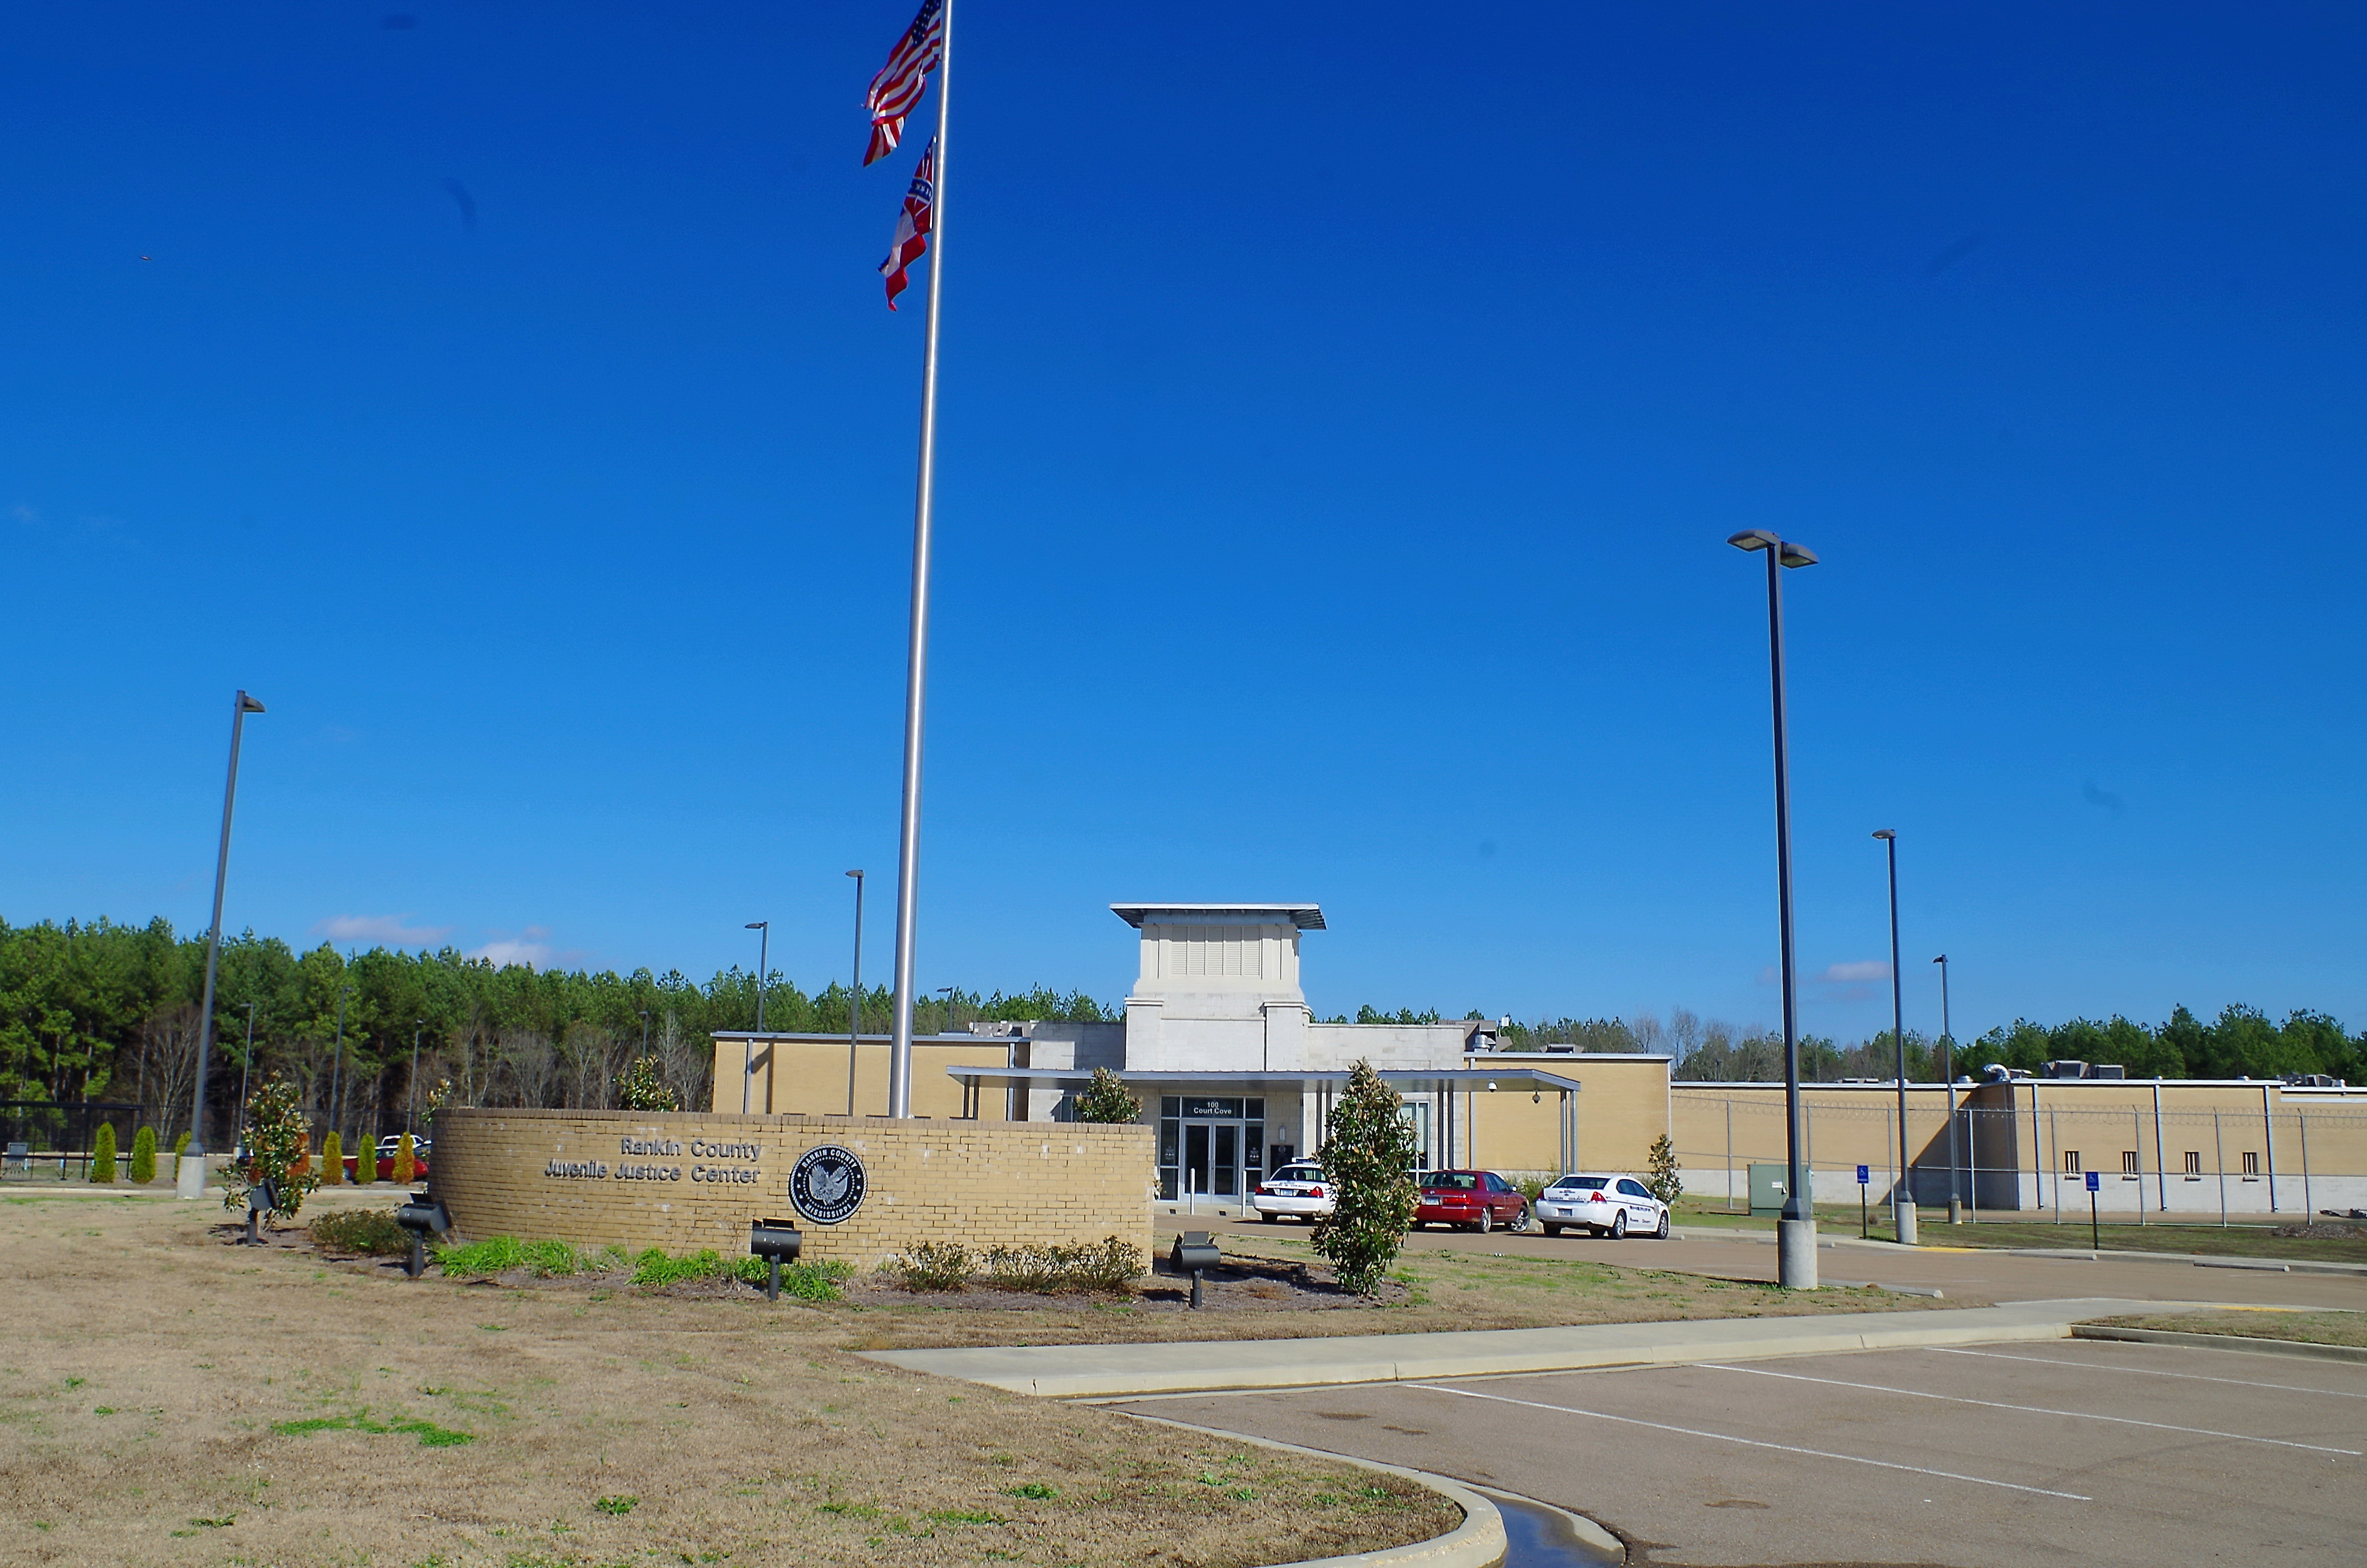 Rankin County Us Courthouses